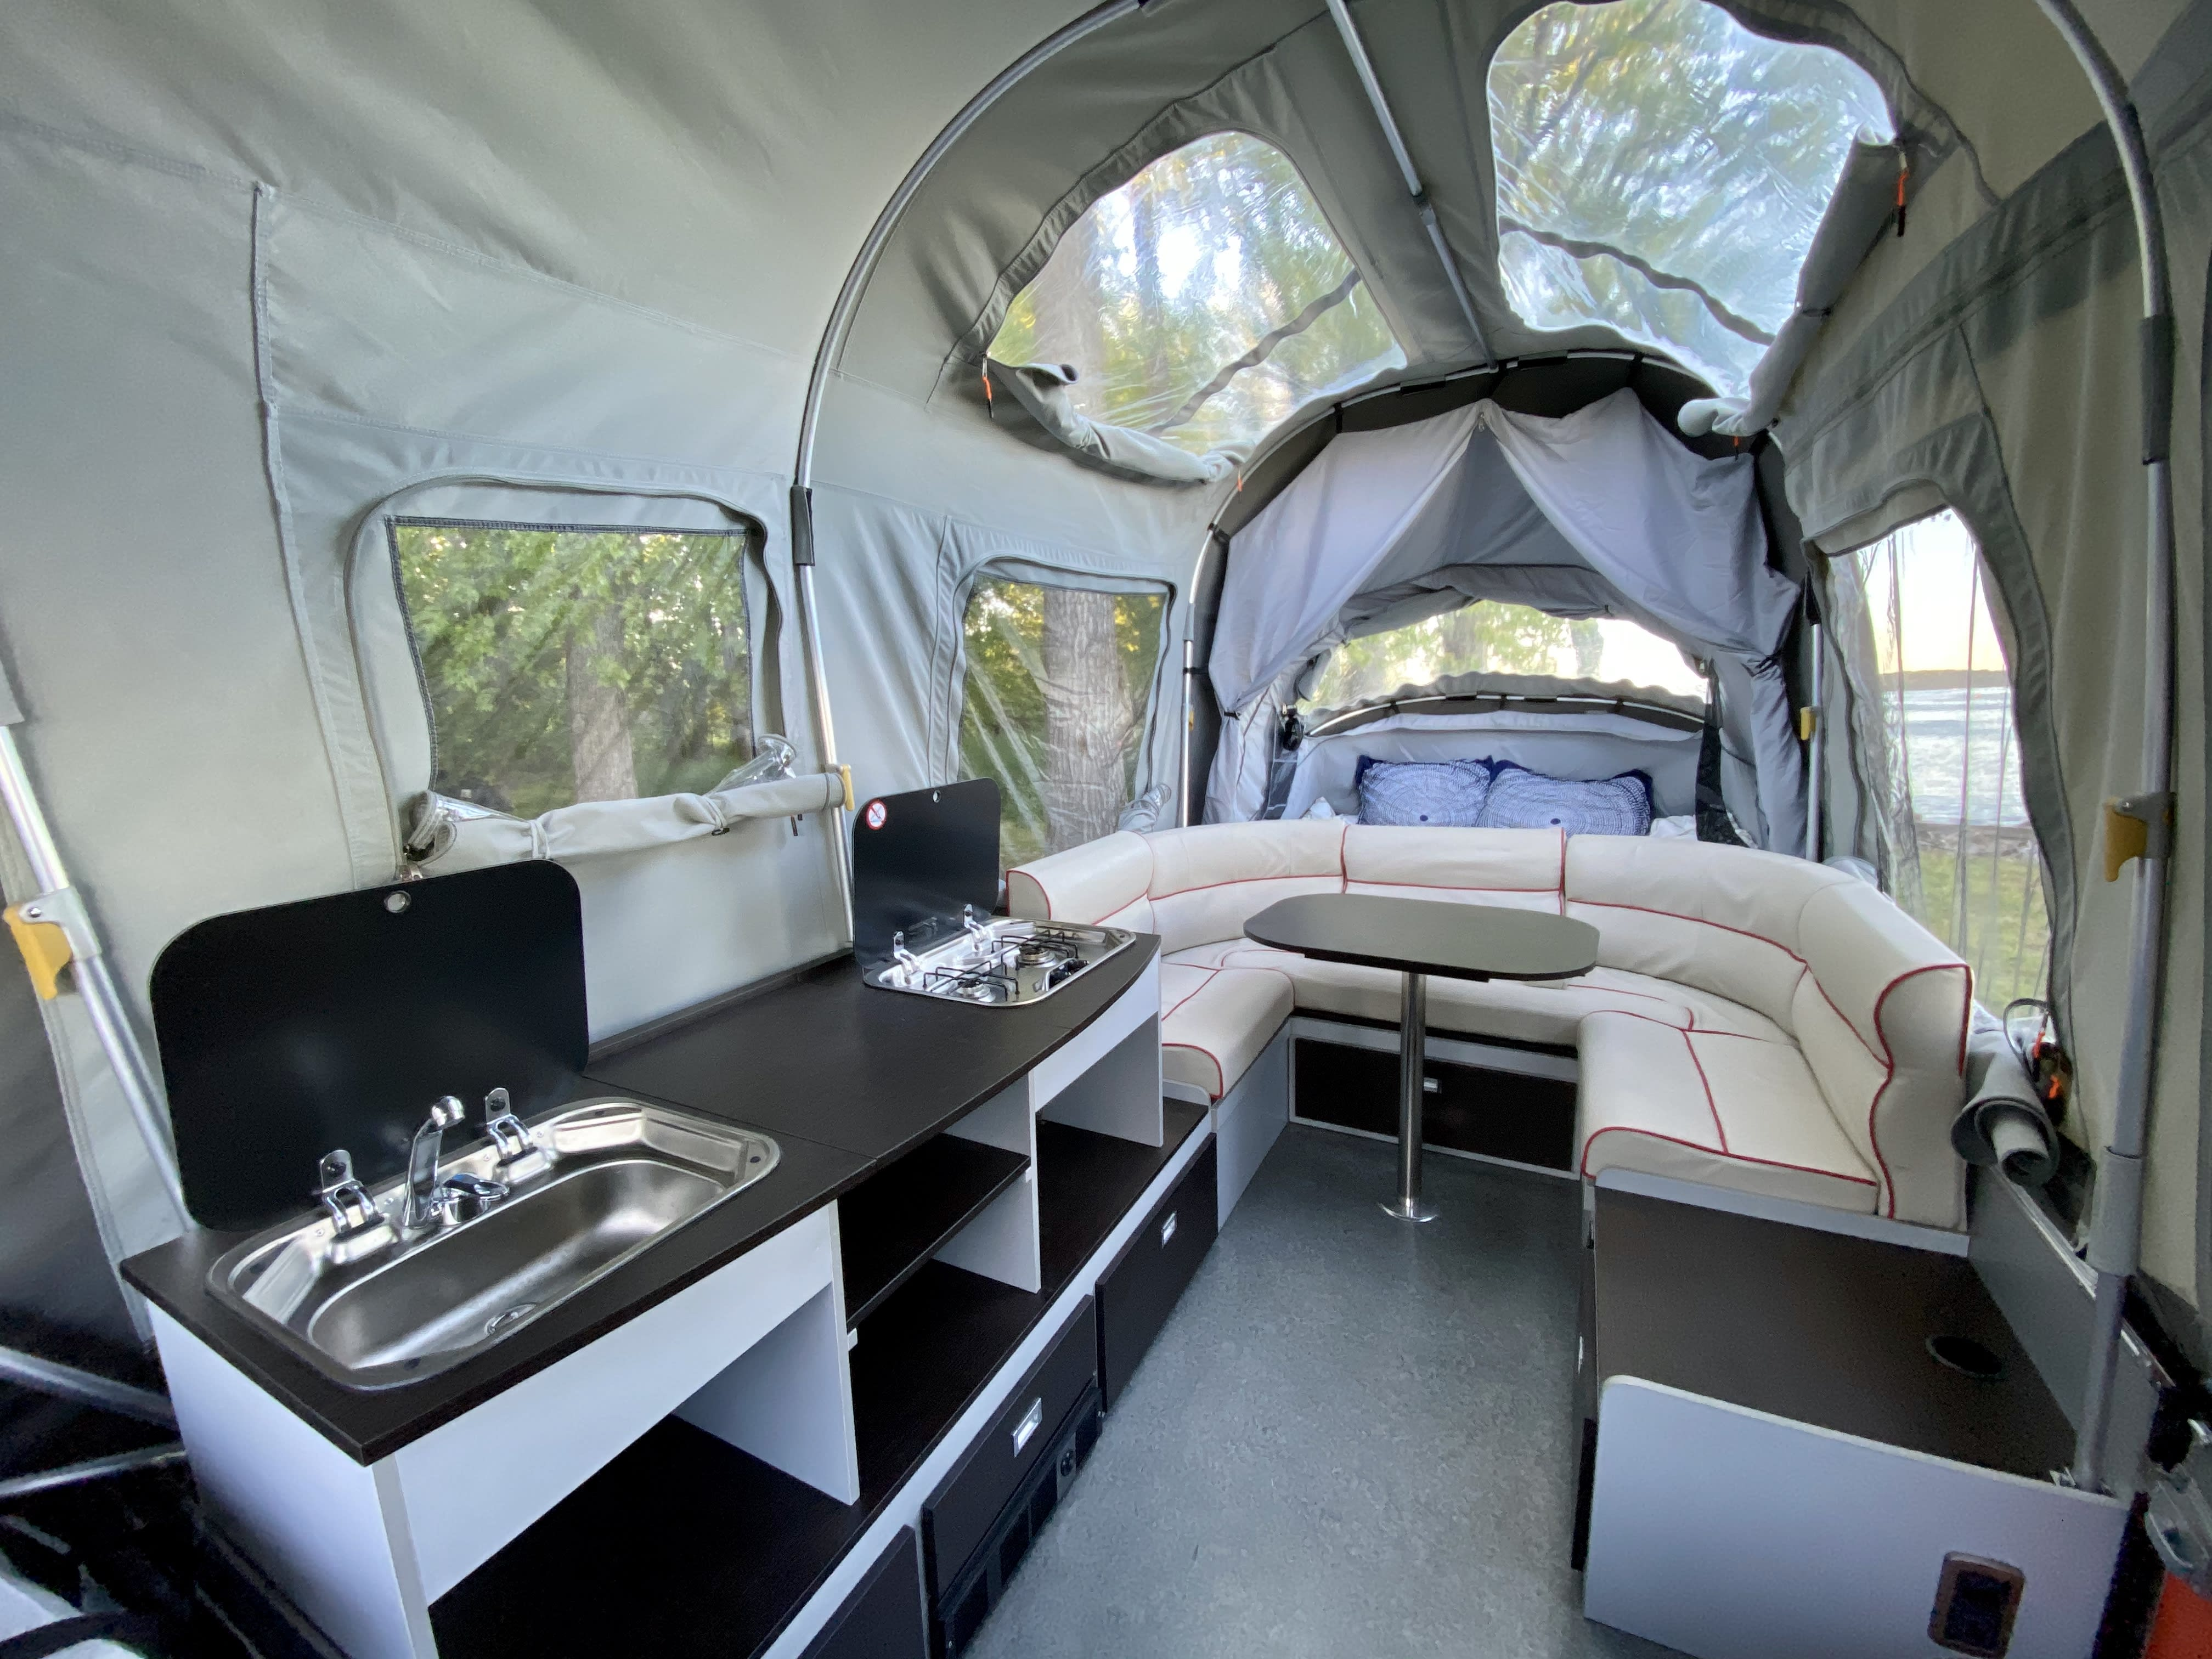 Camper has full amenities including sink/running water, two-burner stove, heater, toilet, 12v and 240v electrics.. OPUS Opus 100 2016